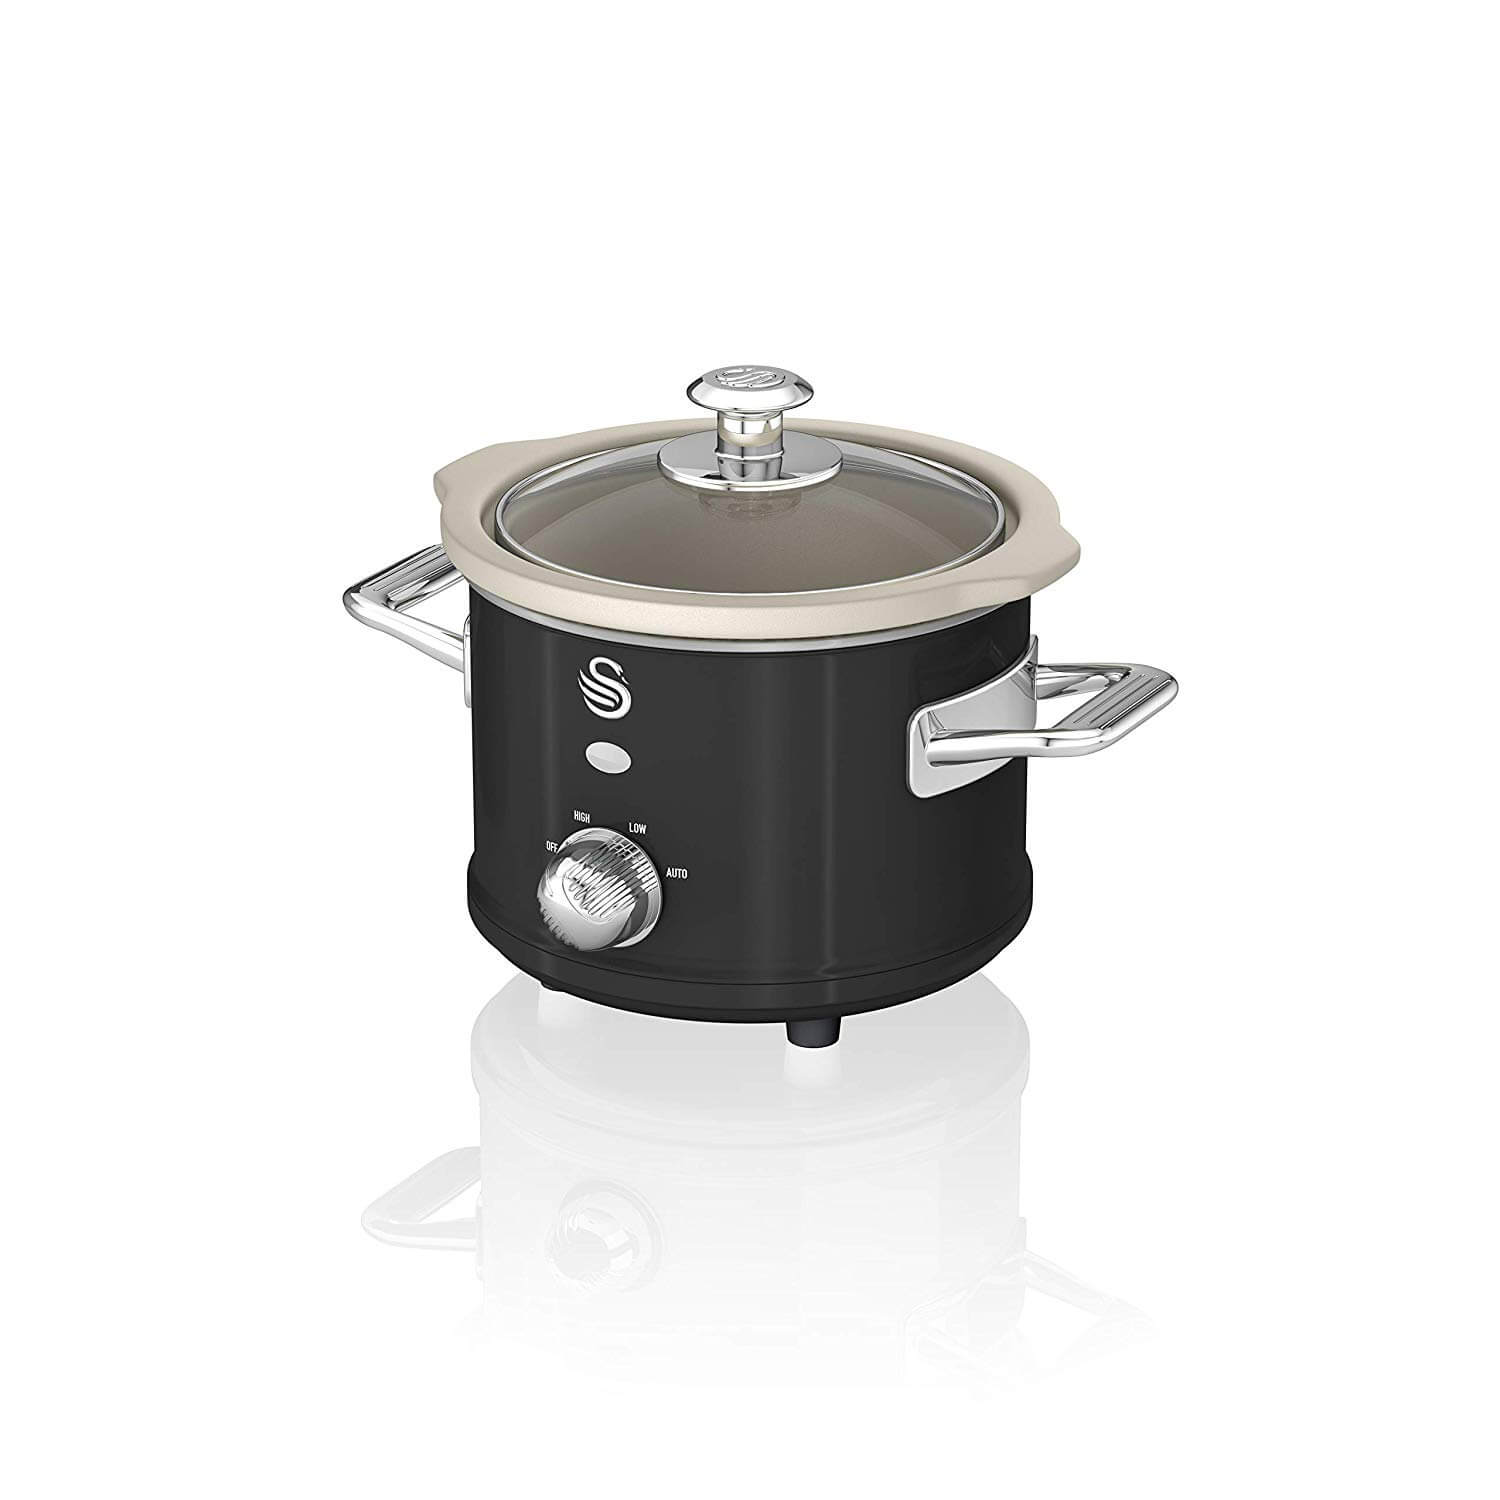 Swan SF17011BN 1.5l Retro Slow Cooker Removable Ceramic Pot + Recipe Book120w